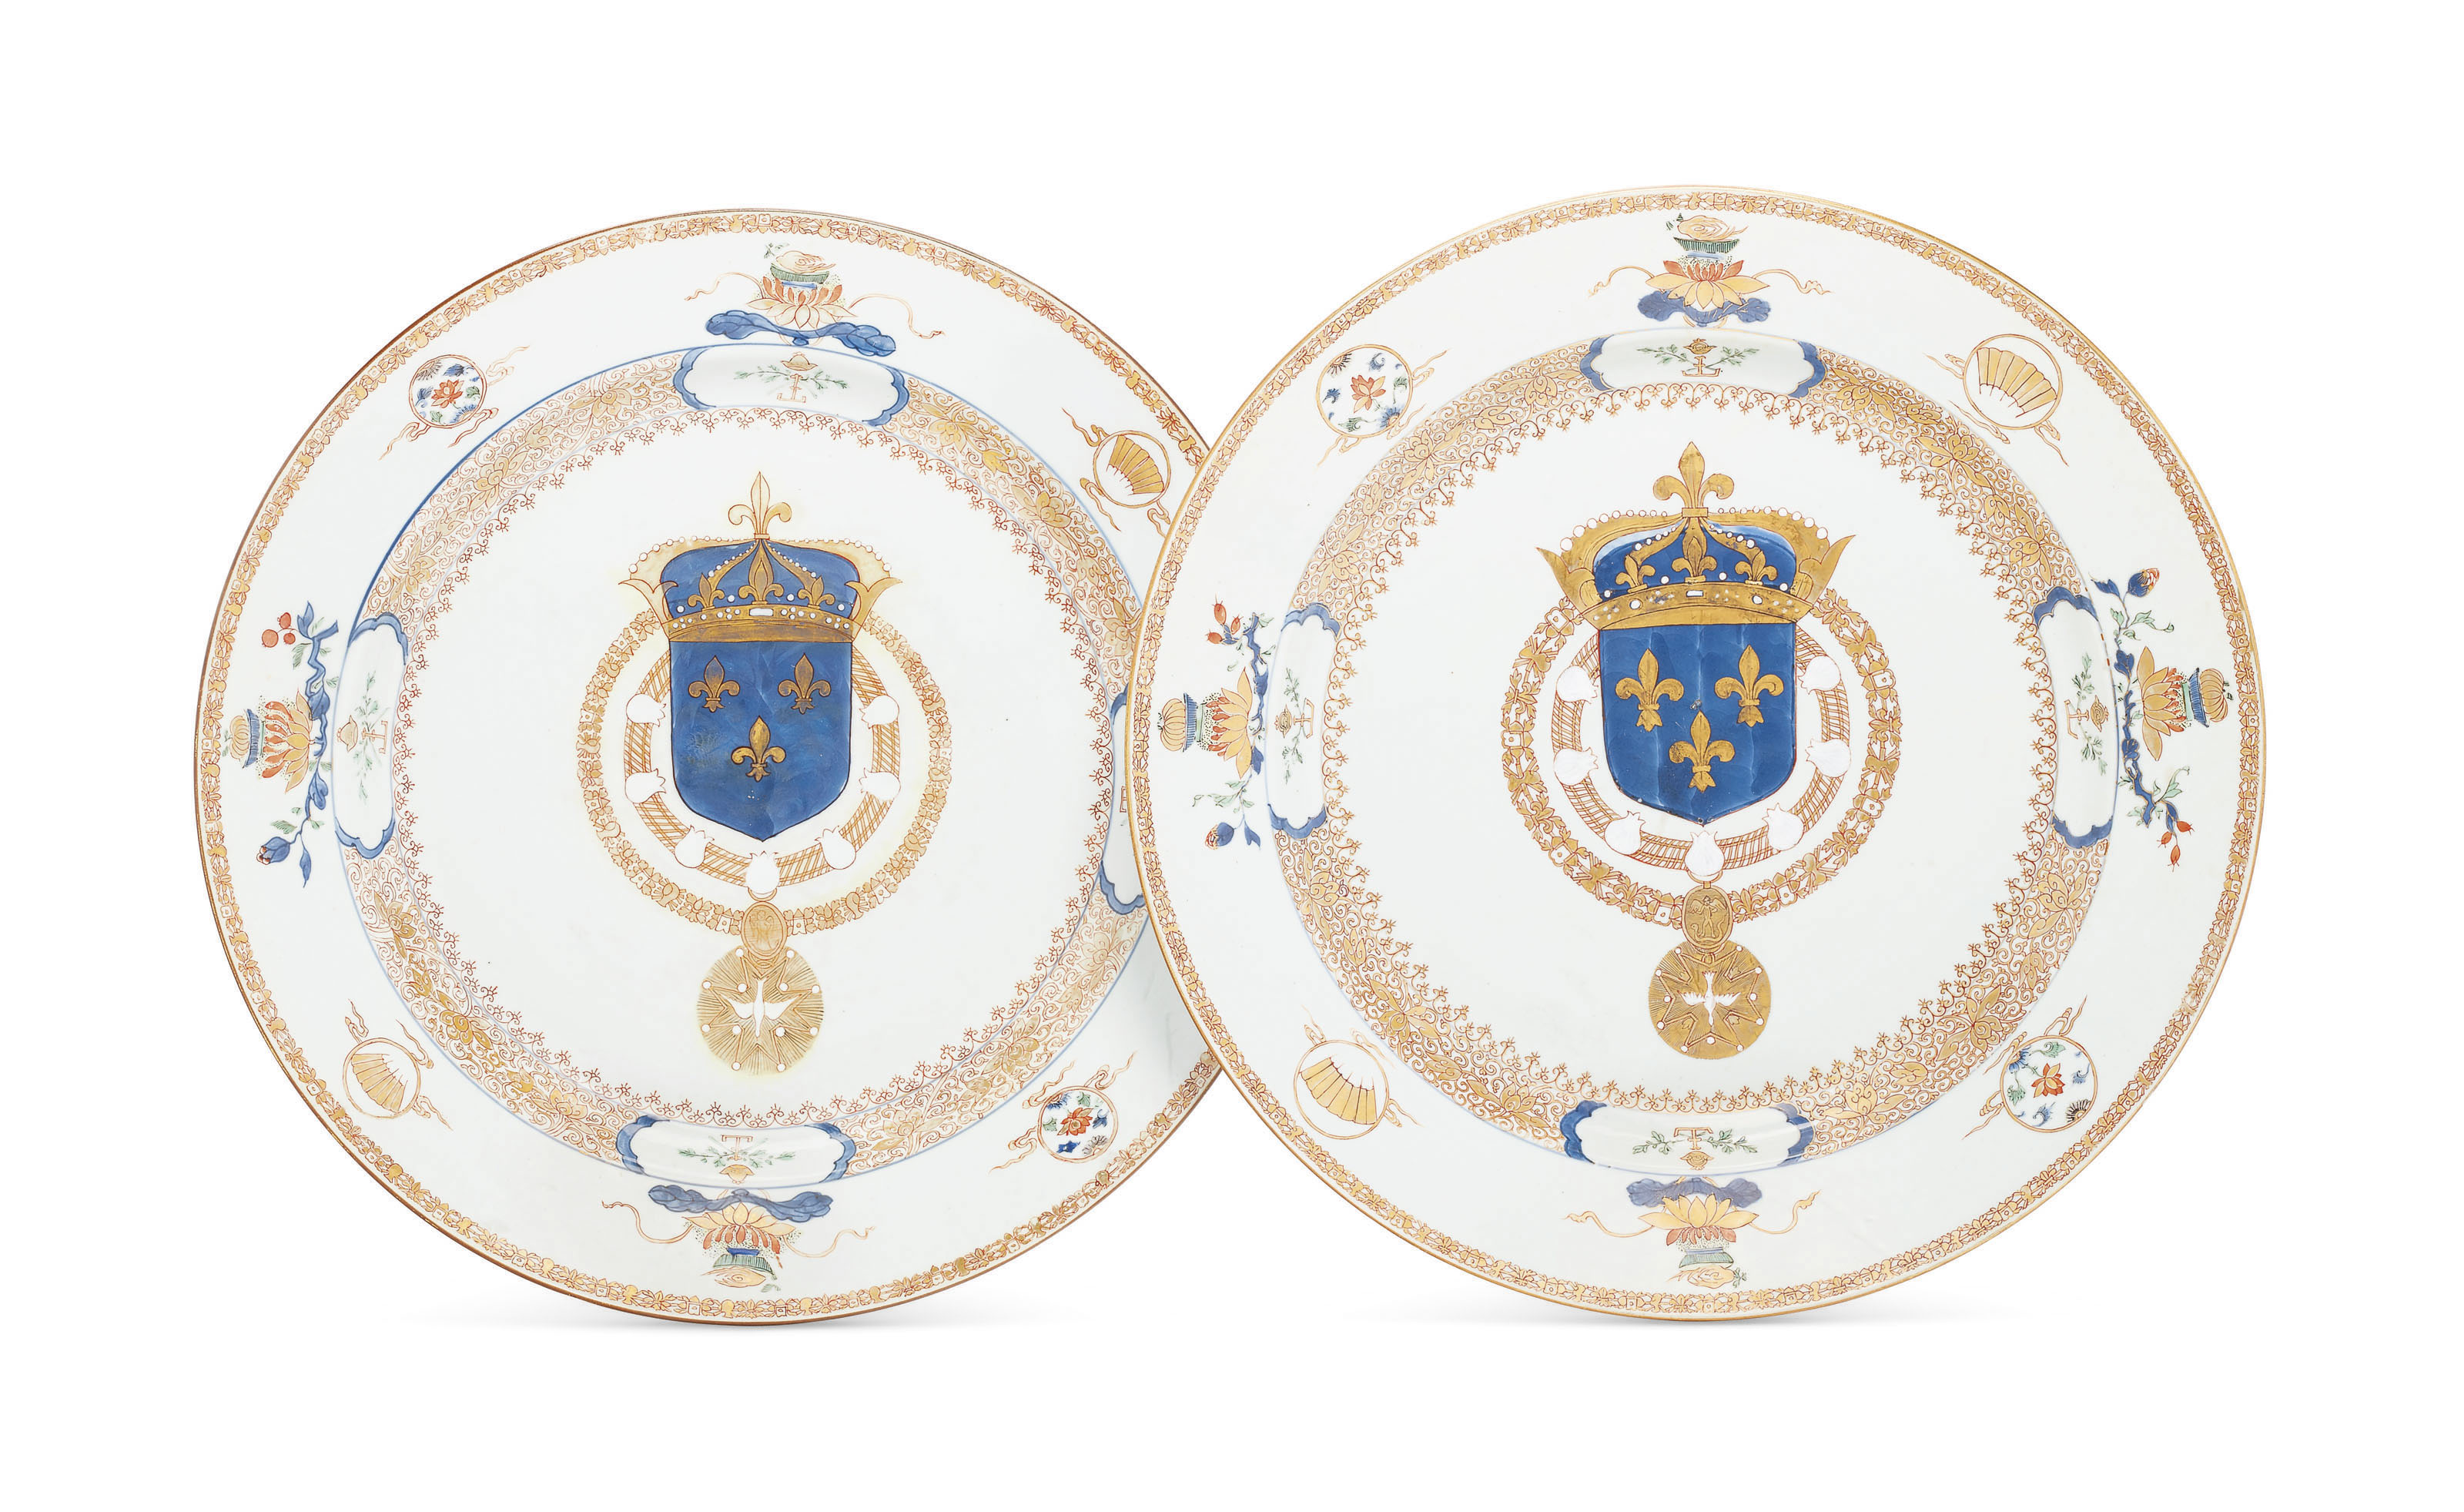 A MASSIVE PAIR OF FRENCH ROYAL ARMORIAL DISHES